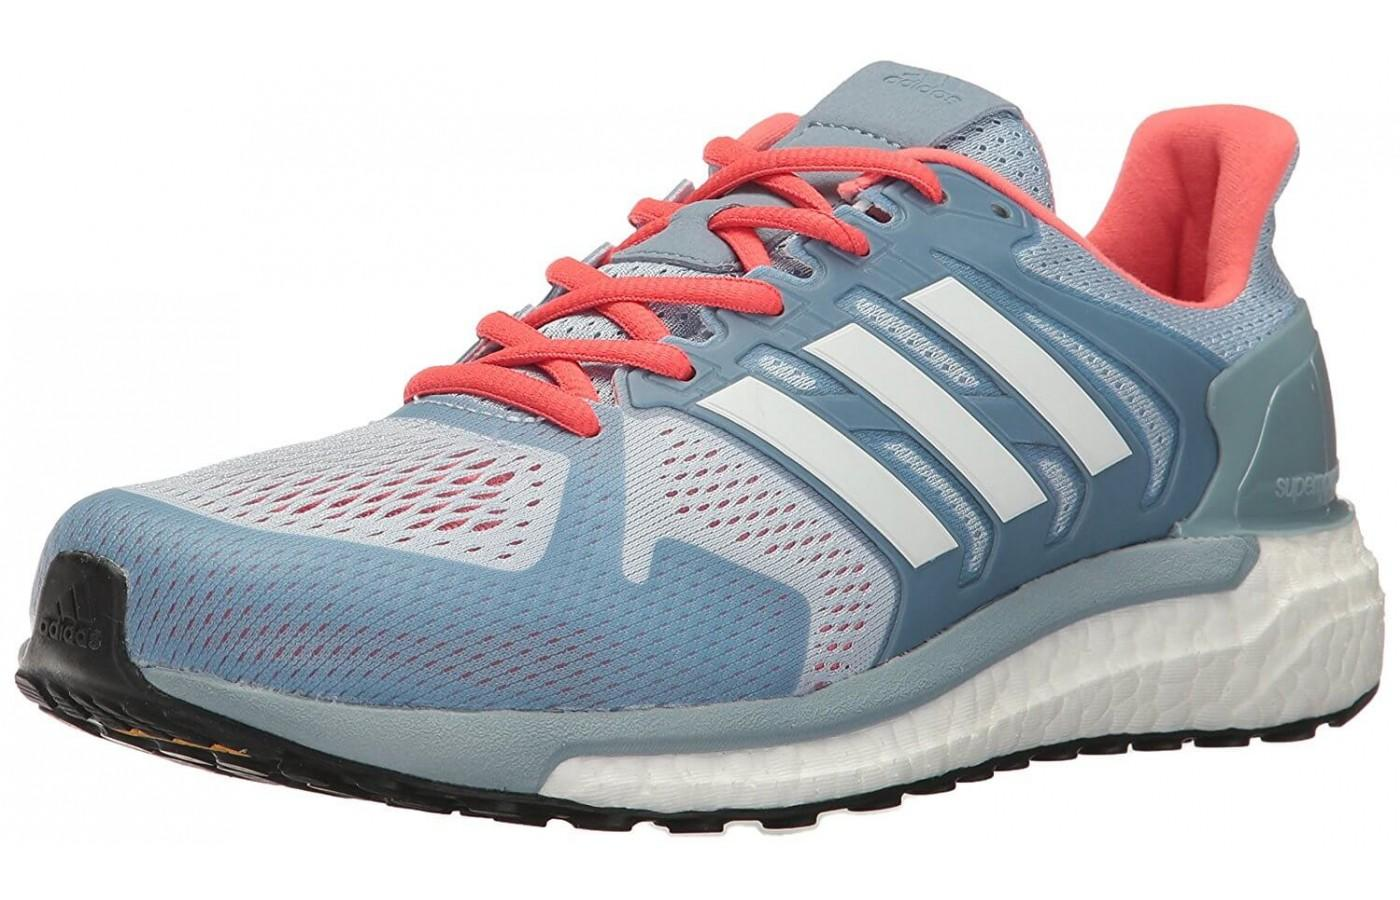 The Adidas Supernova ST is a stability shoe that represents a redesign of the Sequence 9